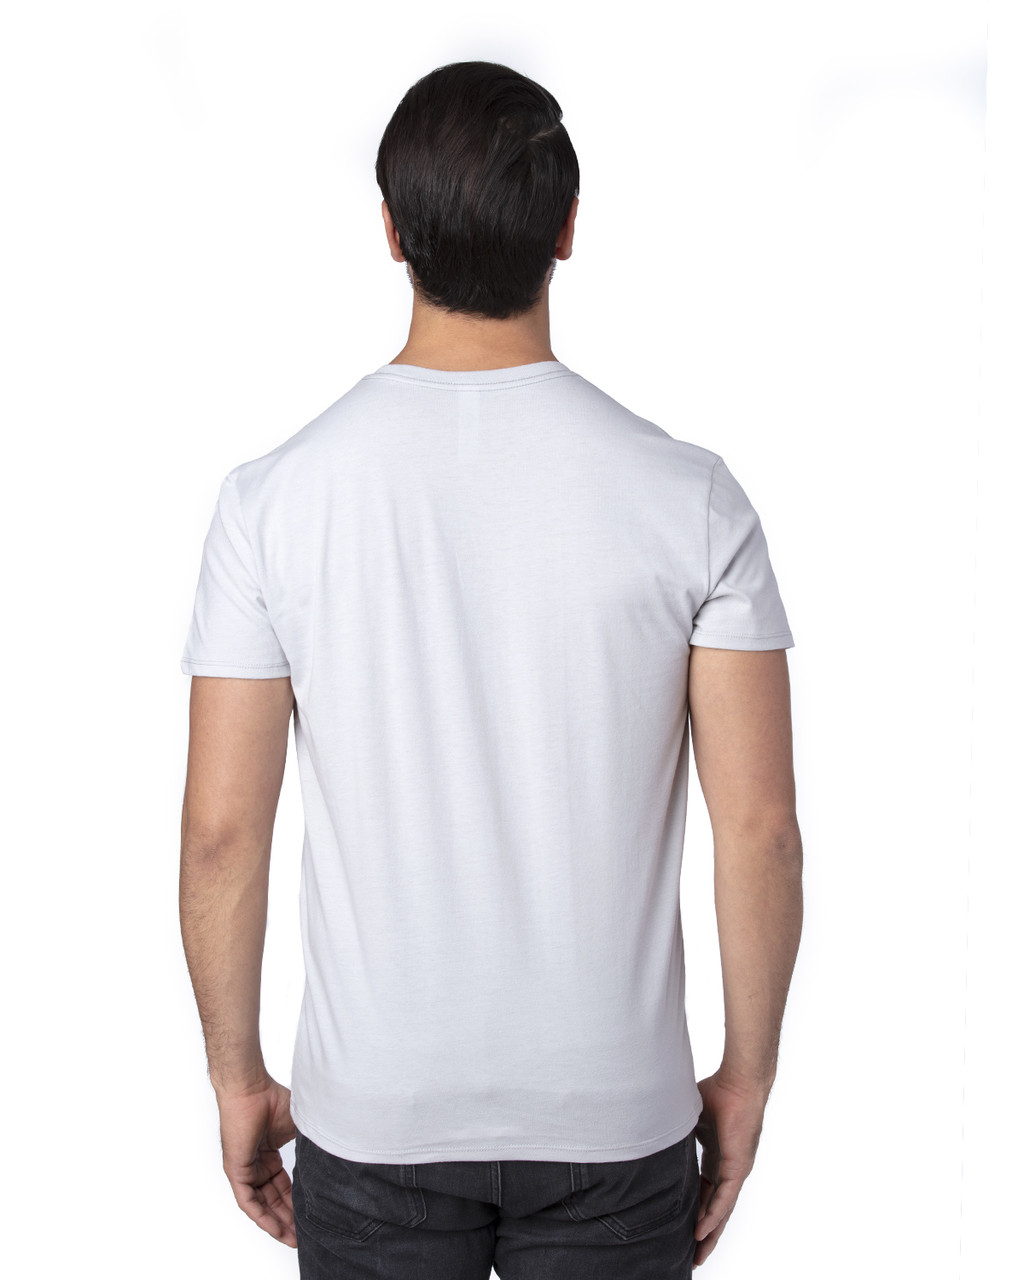 Silver - Back, 100A Threadfast Unisex Ultimate Short-Sleeve T-Shirt | BlankClothing.ca